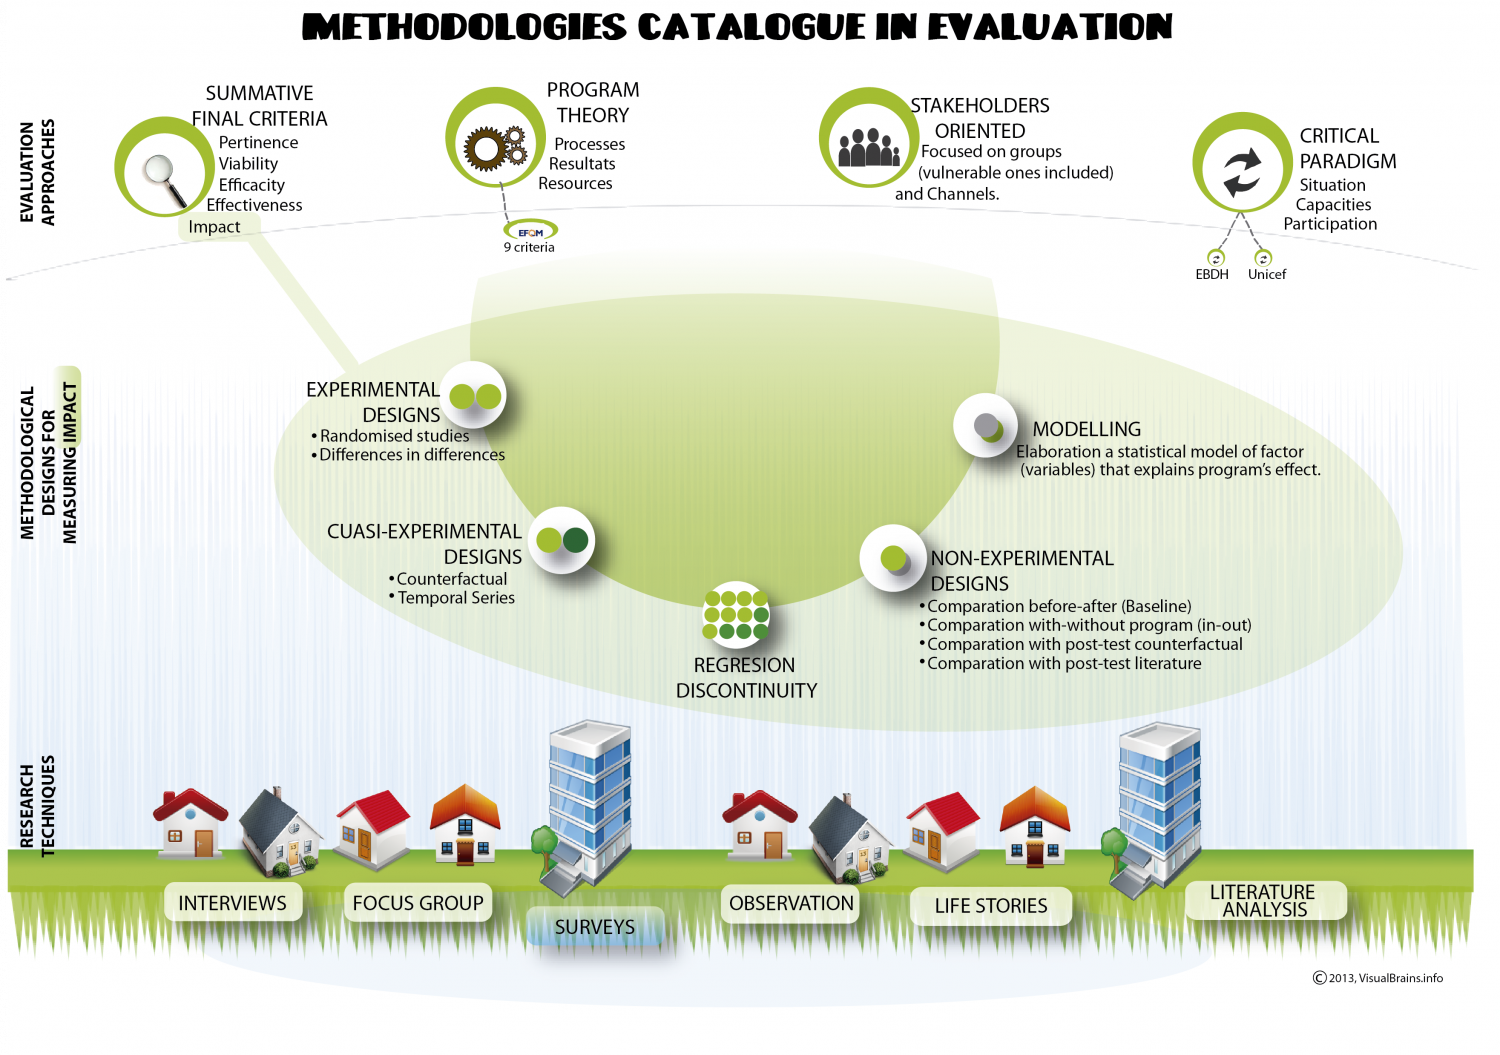 Methodologies in Evaluation Infographic